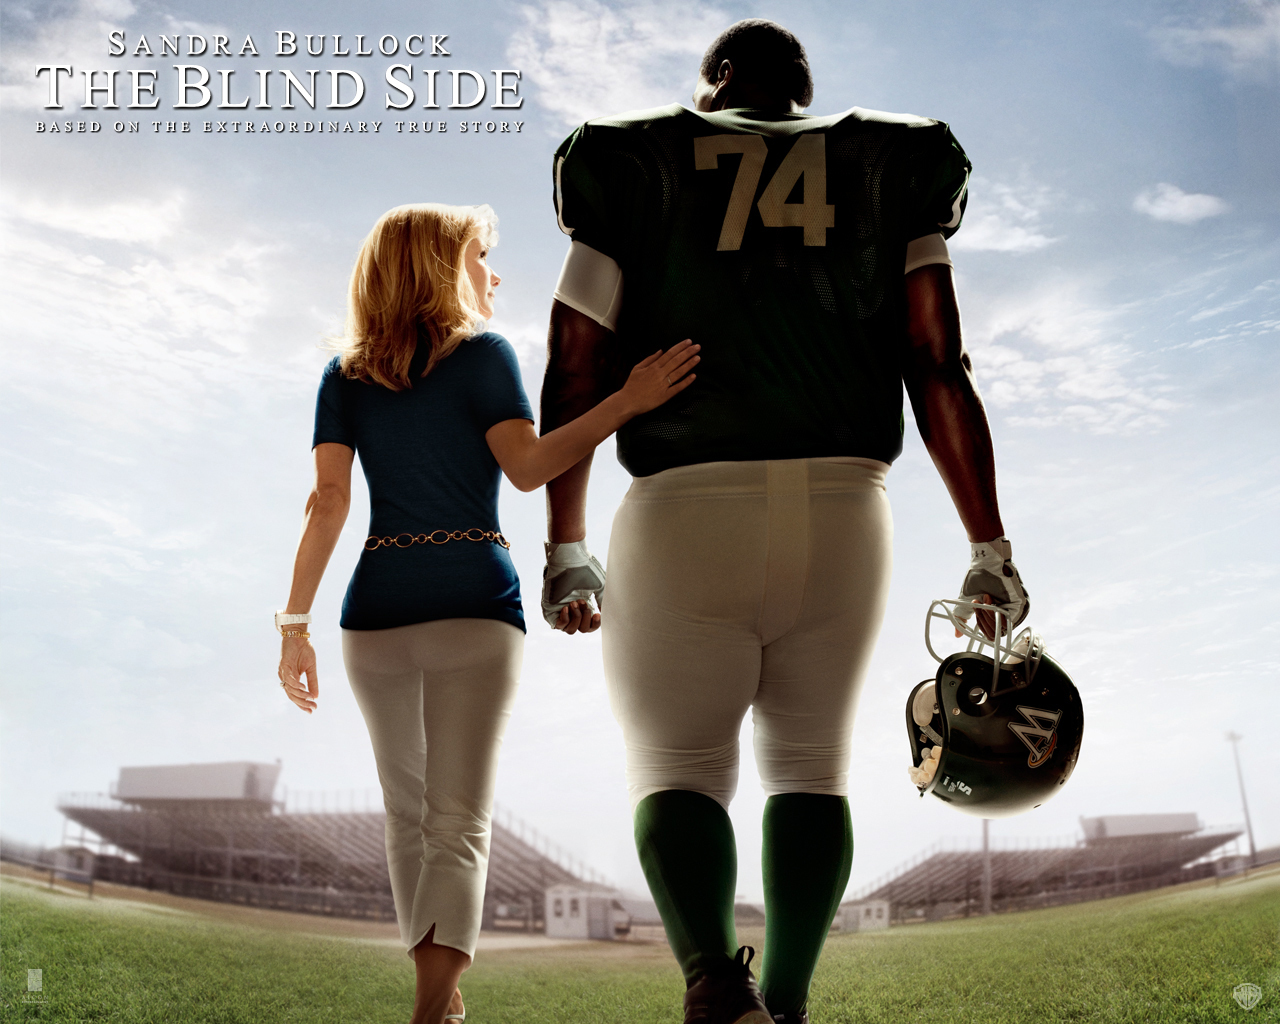 blind side 123movies - the blind side full movie watch the blind side online for free at 123movies stream the blind side full movie online free in hd.